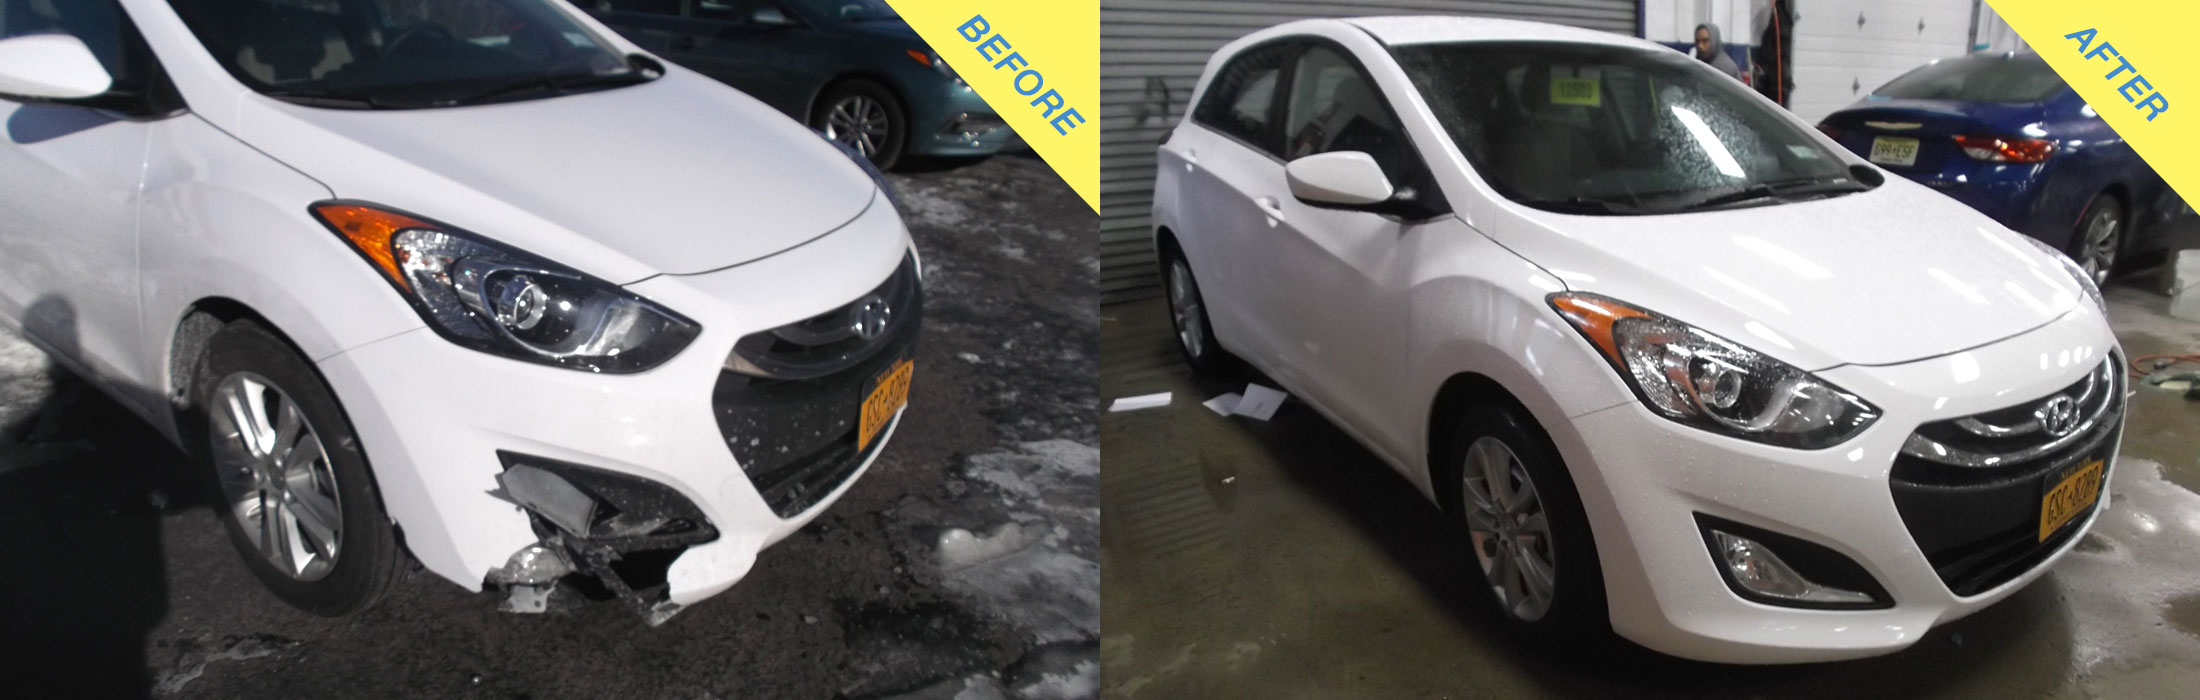 beforeandafter_car_3